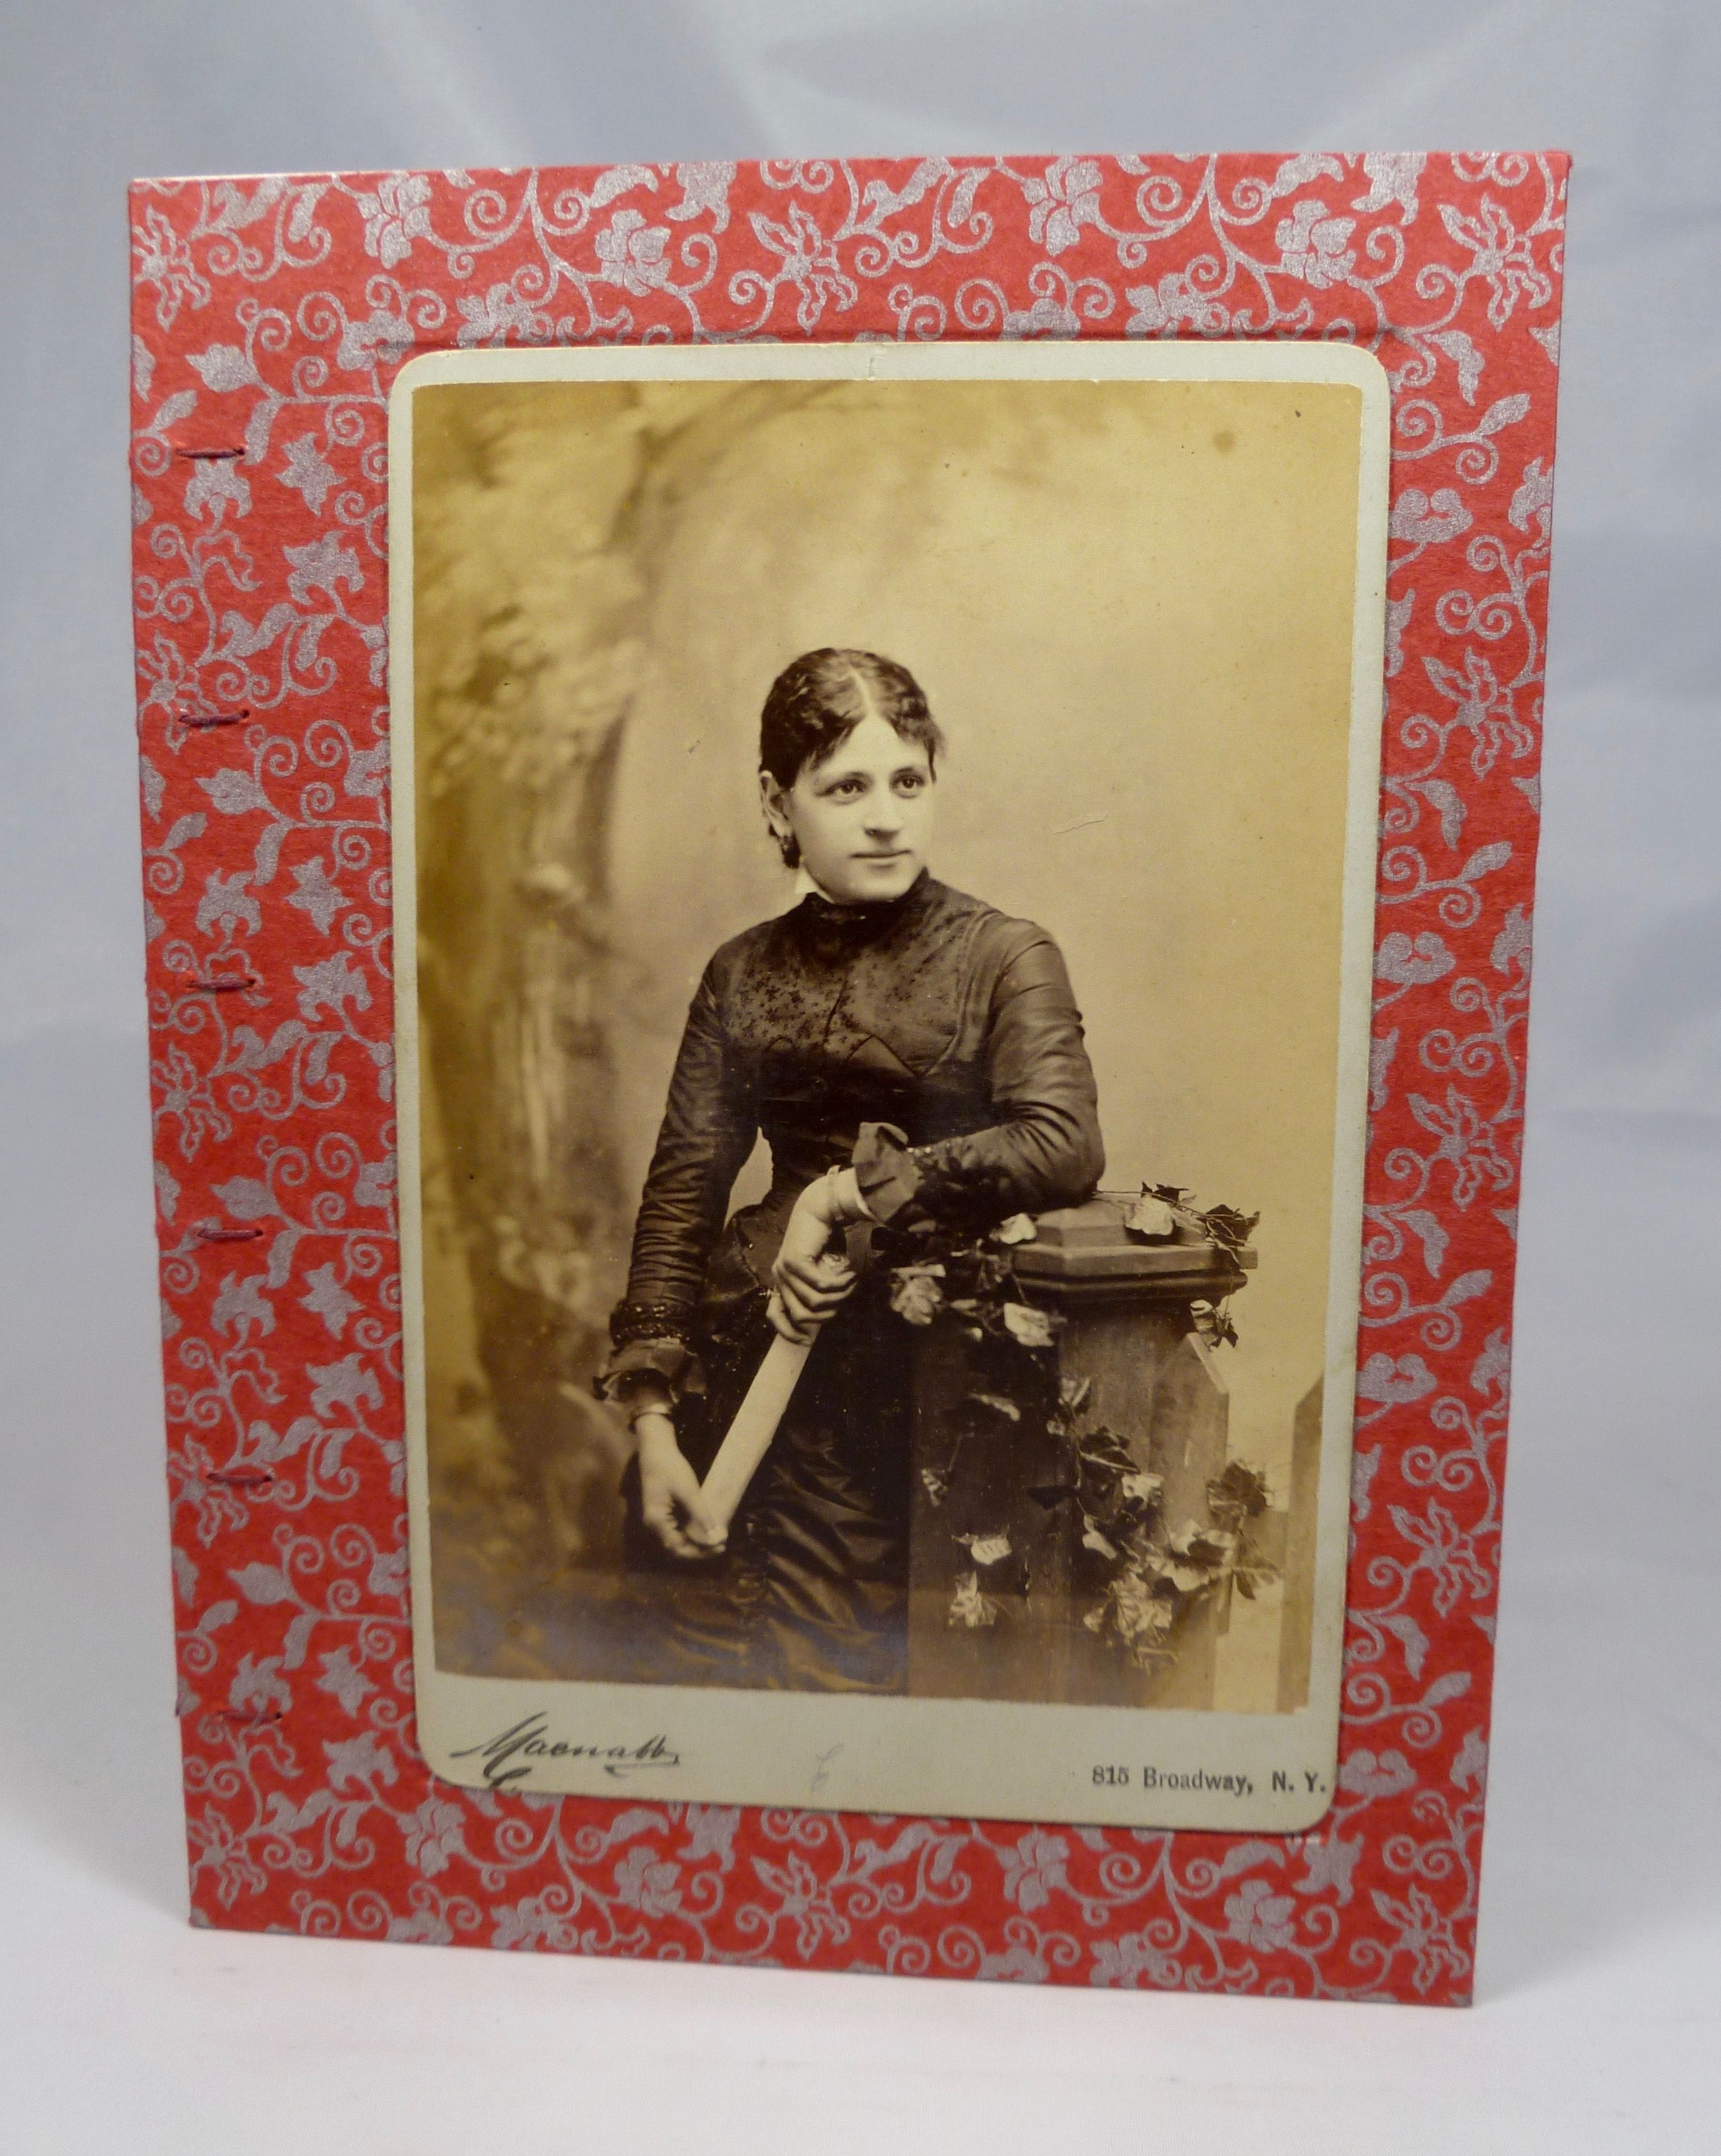 http://www.passionatobooks.com/printed-journals/vintage-photograph-of-a-seated-woman-on-cover-of-hand-sewn-journal